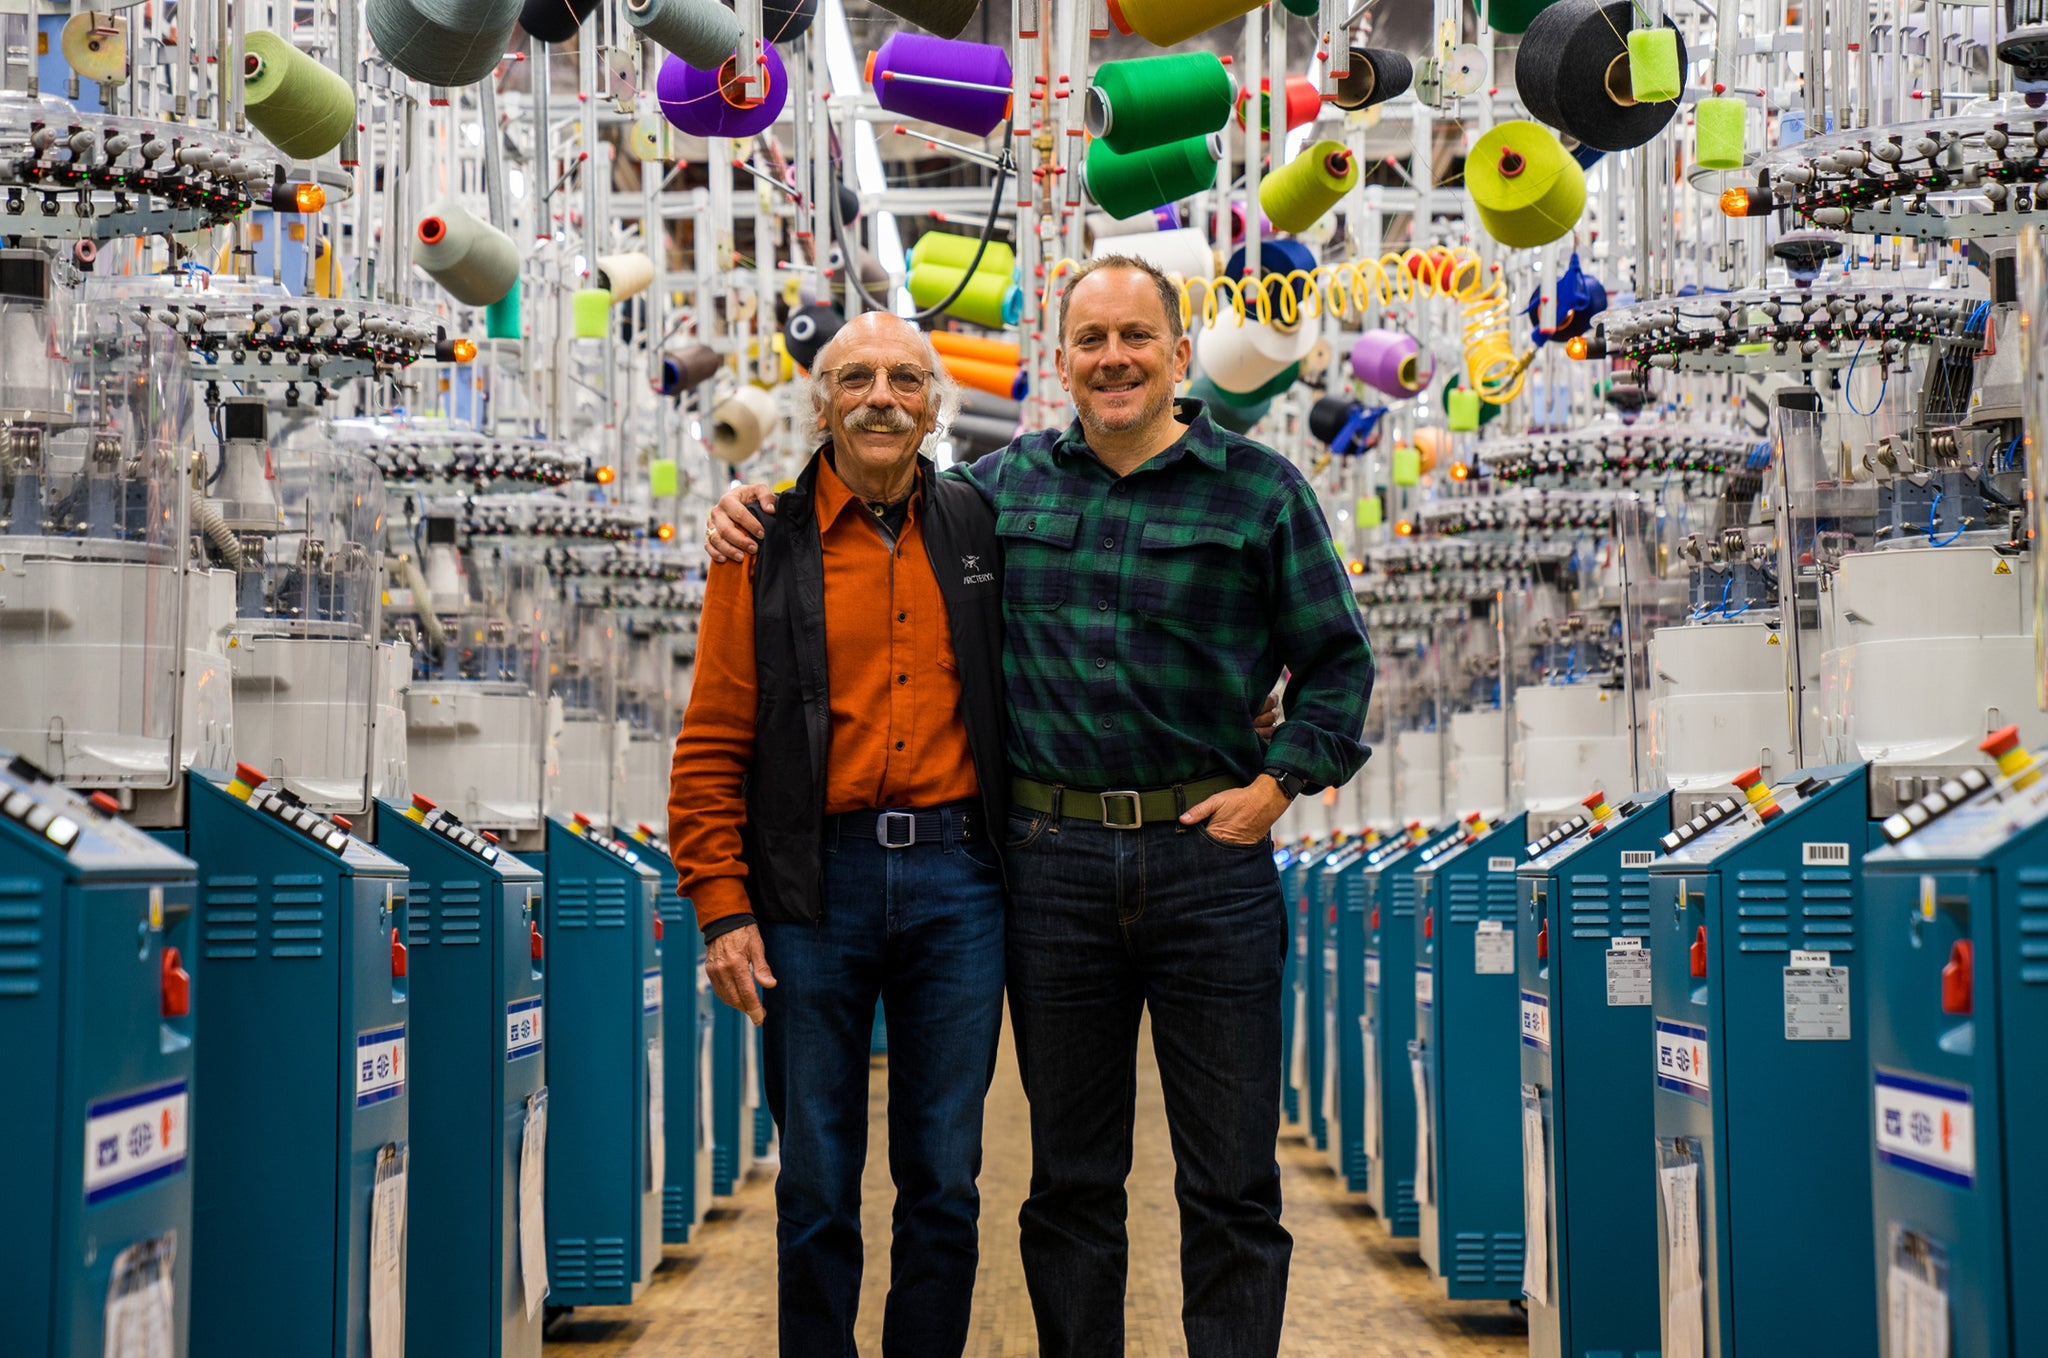 Two men, standing in the knitting room